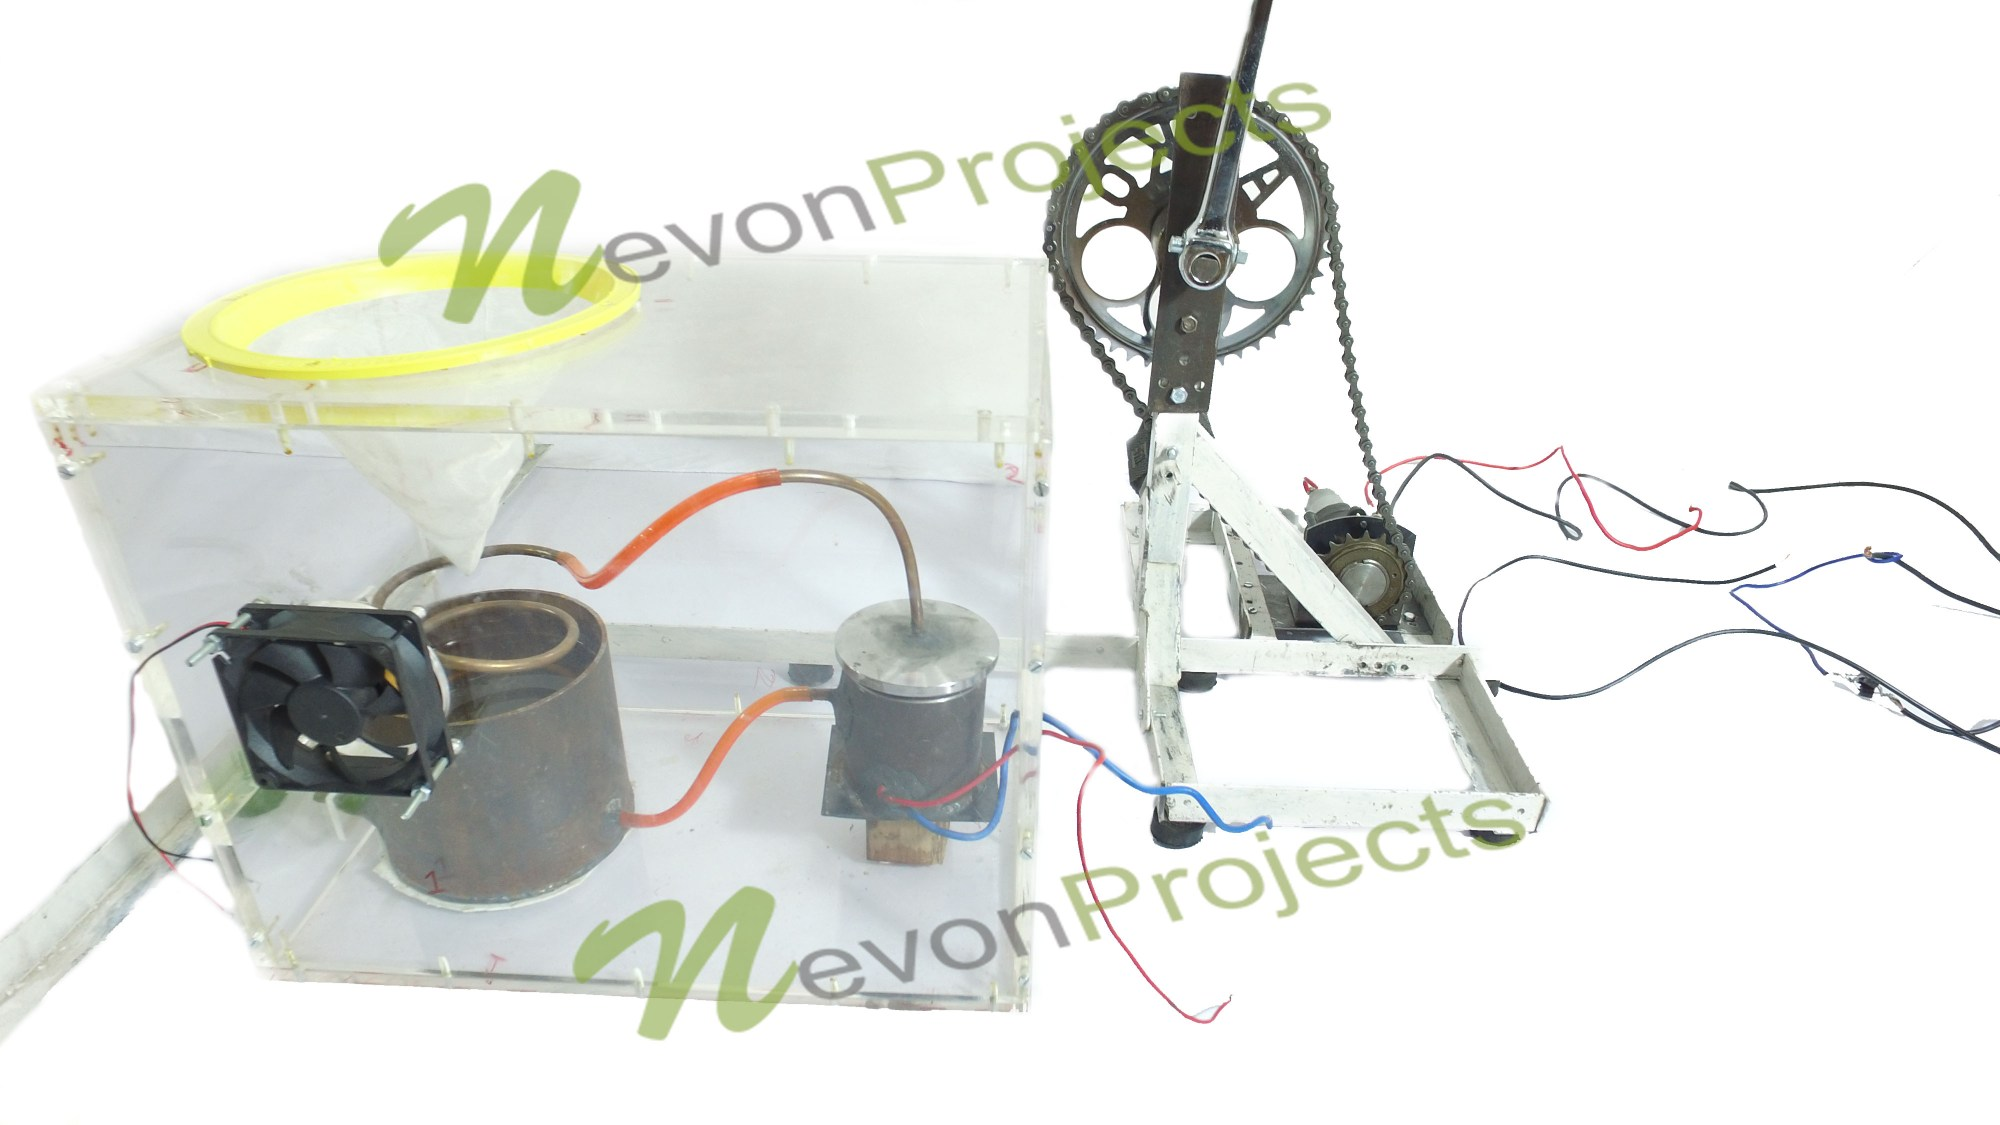 hight resolution of pedal powered water purifier project